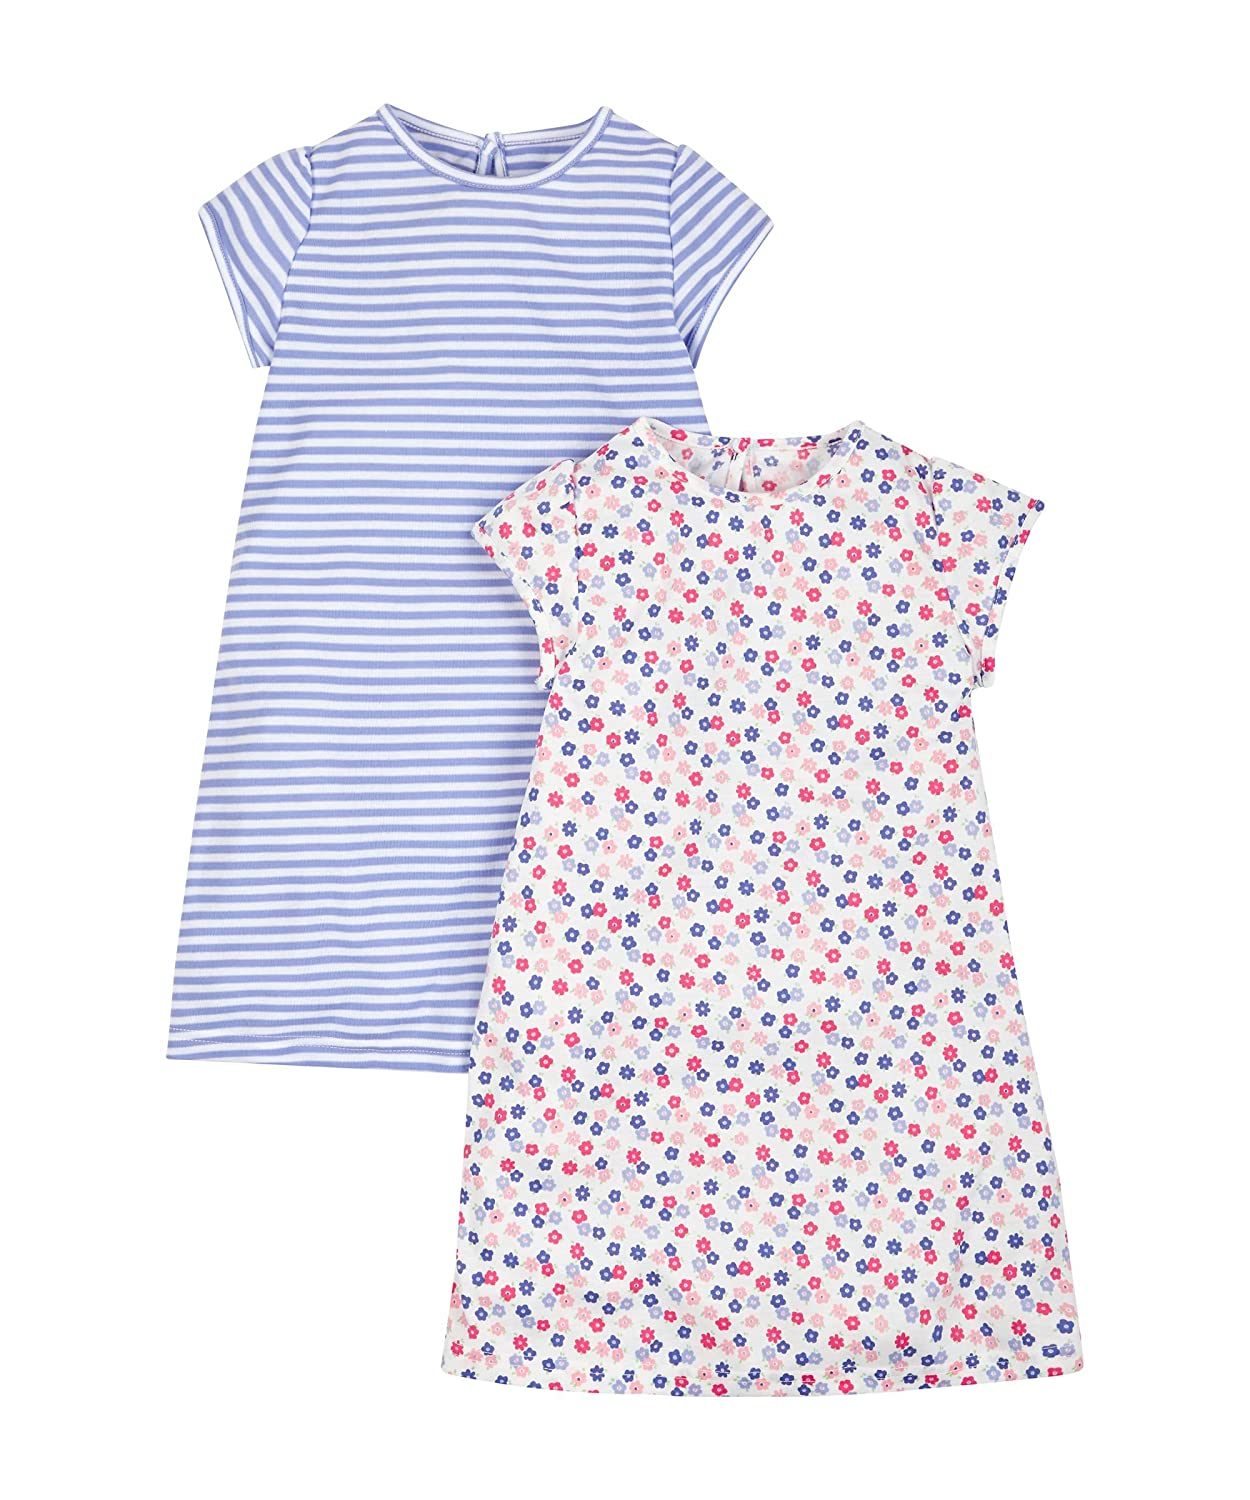 Mothercare Maternity Baby Nightdress (2 Pack) (2-3 Years)